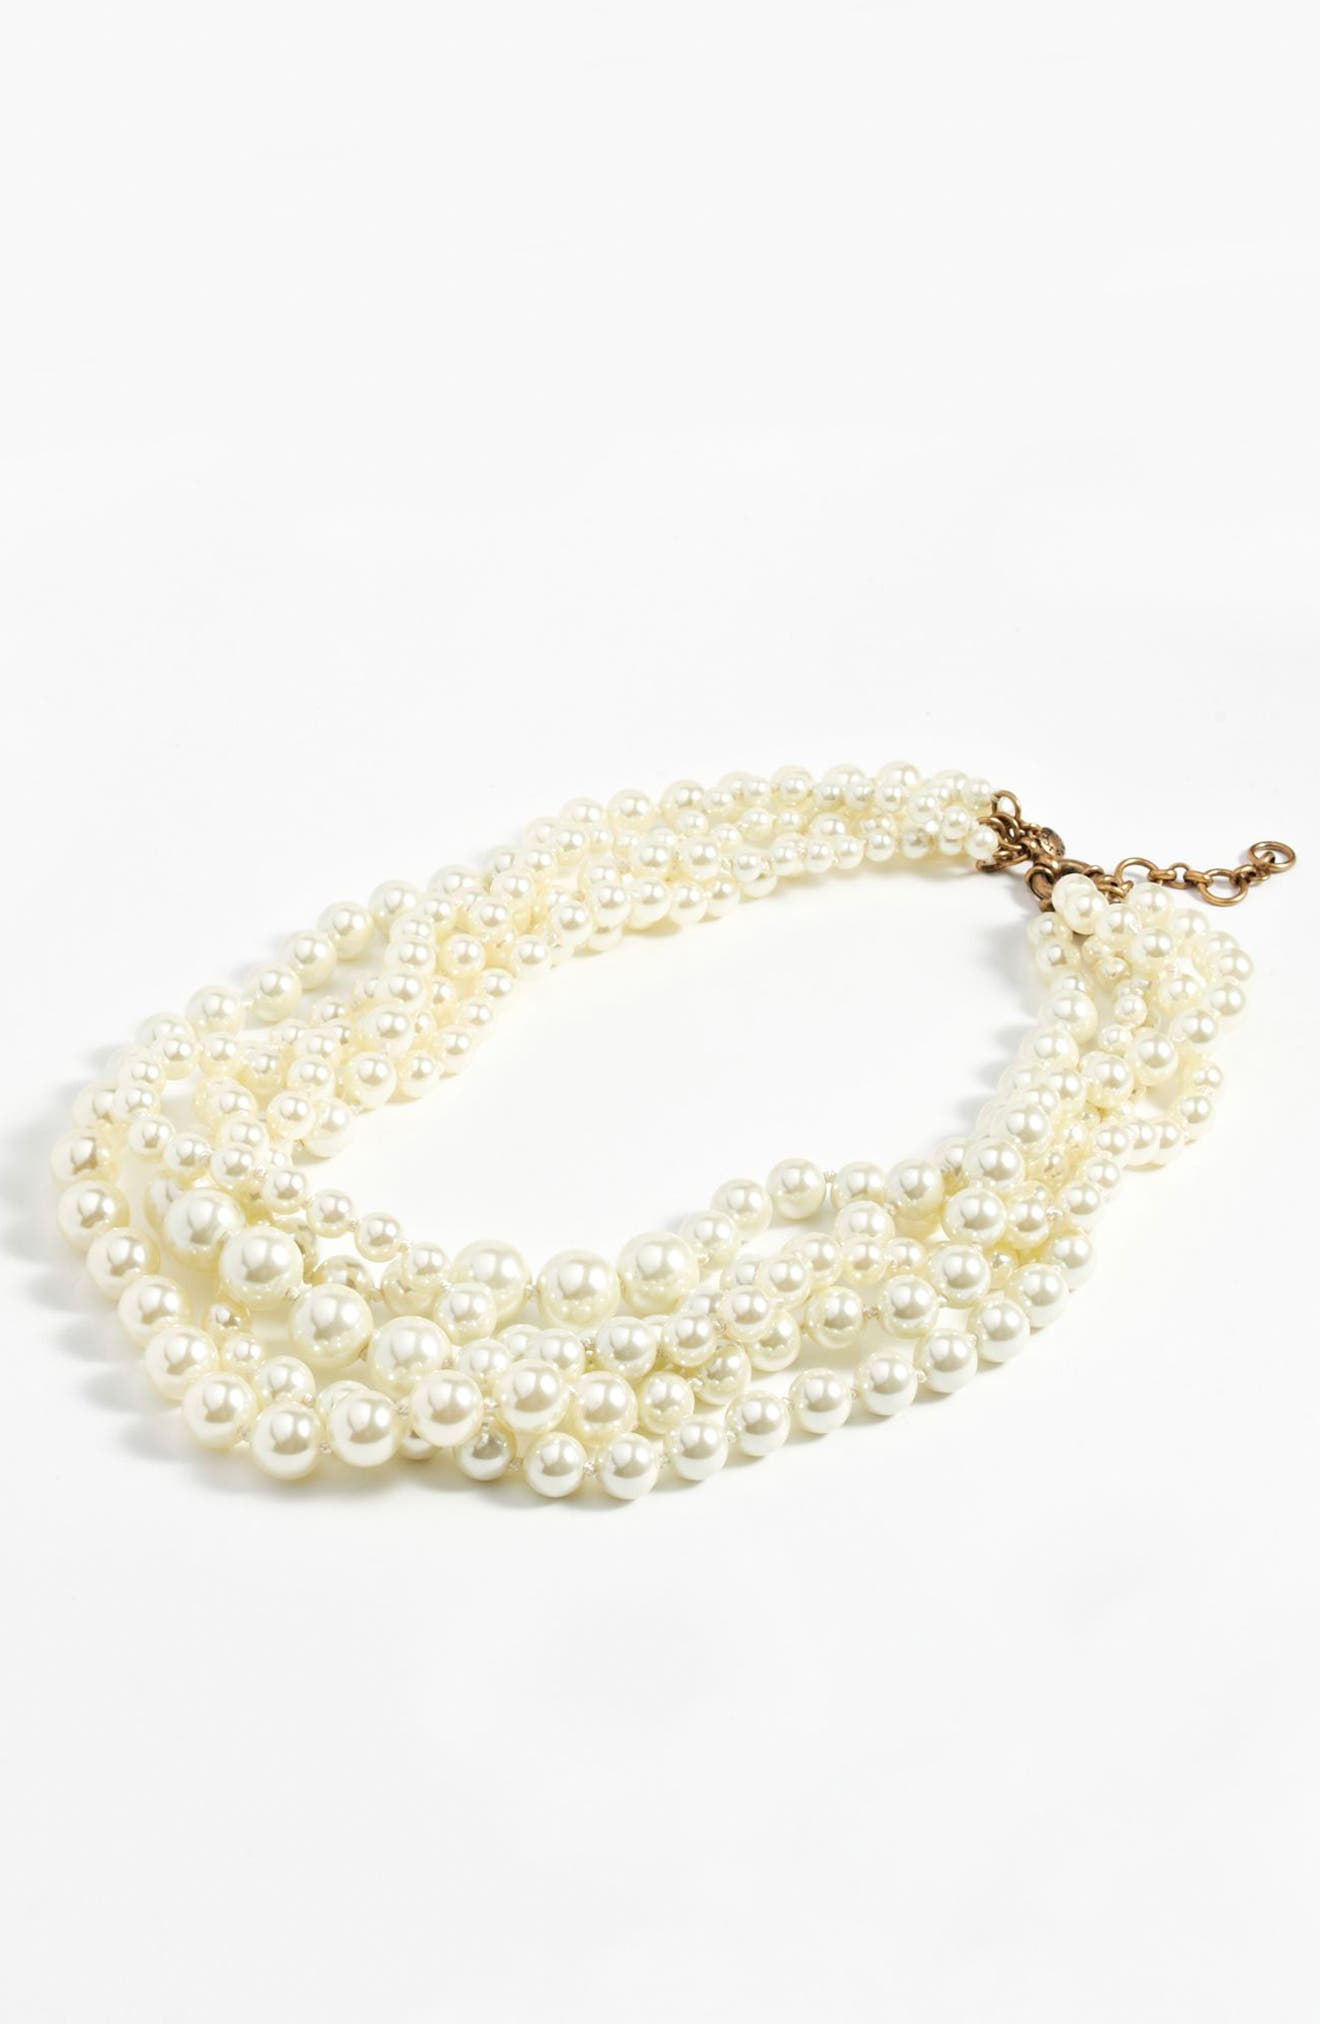 J.CREW, Imitation Pearl Hammock Necklace, Alternate thumbnail 2, color, 100